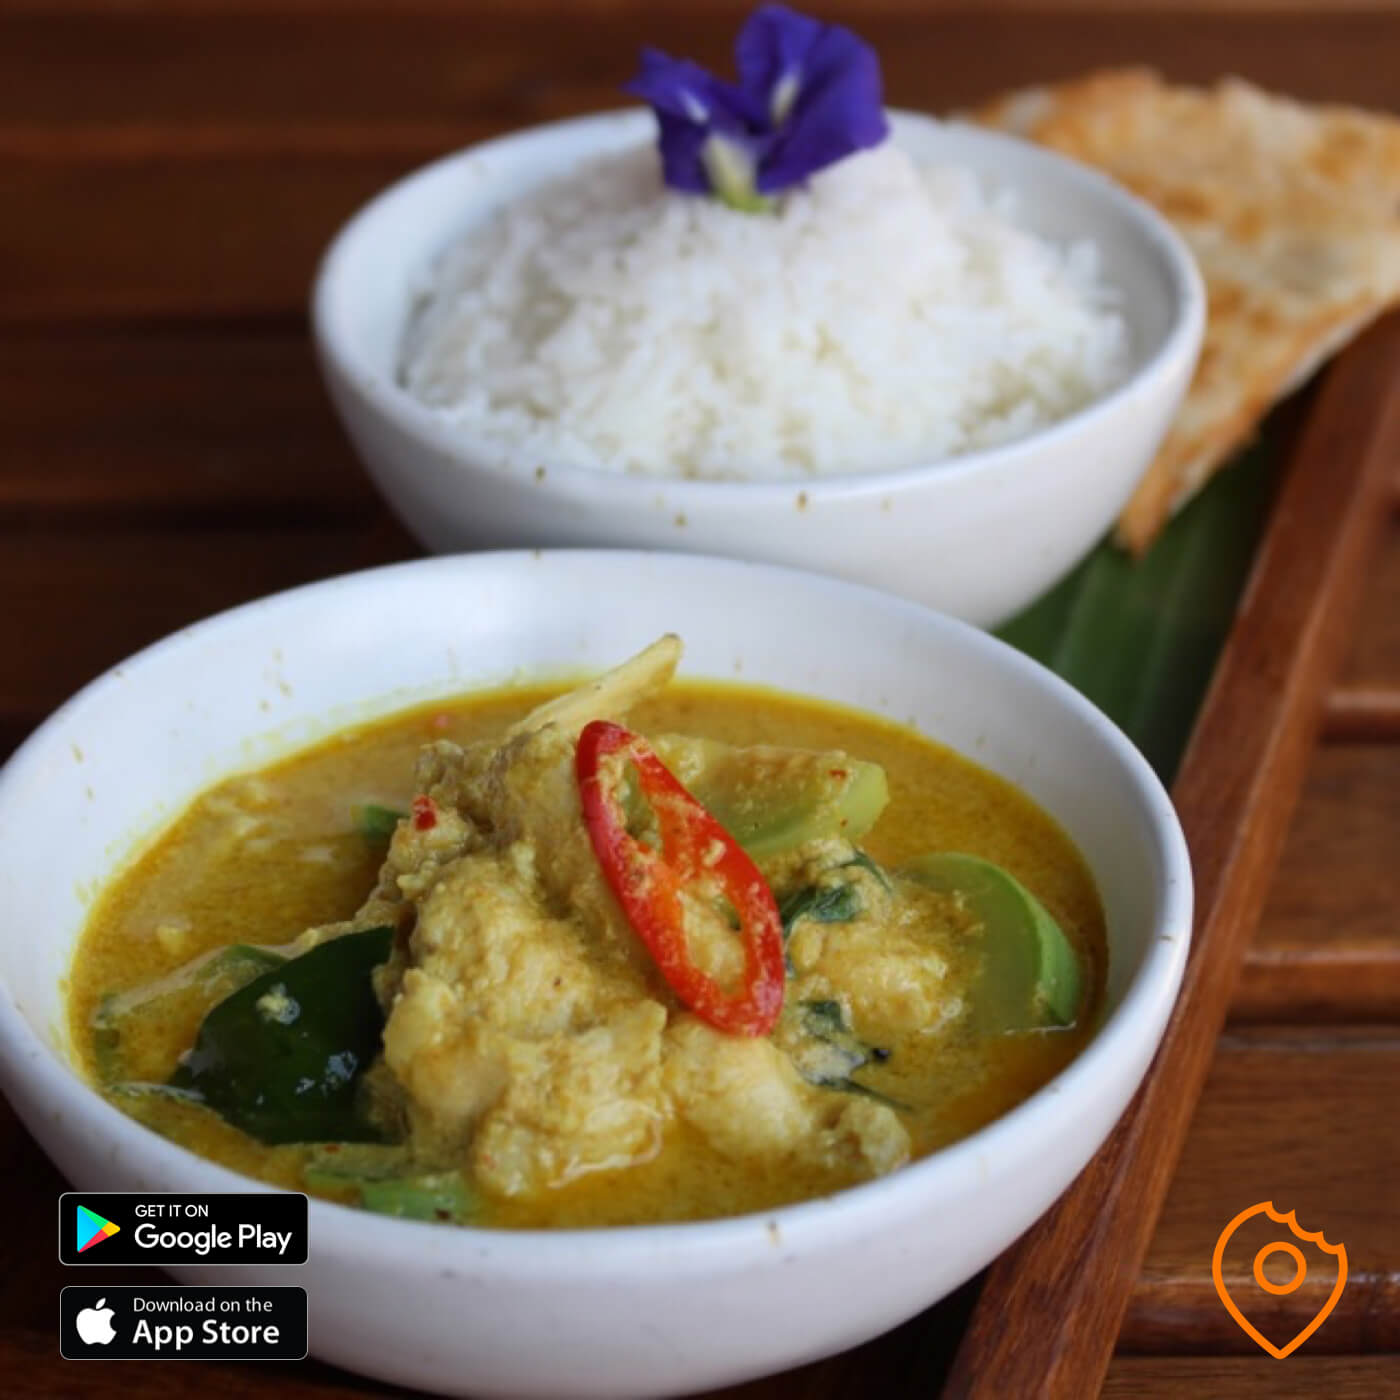 Elefin Green Curry with Roti